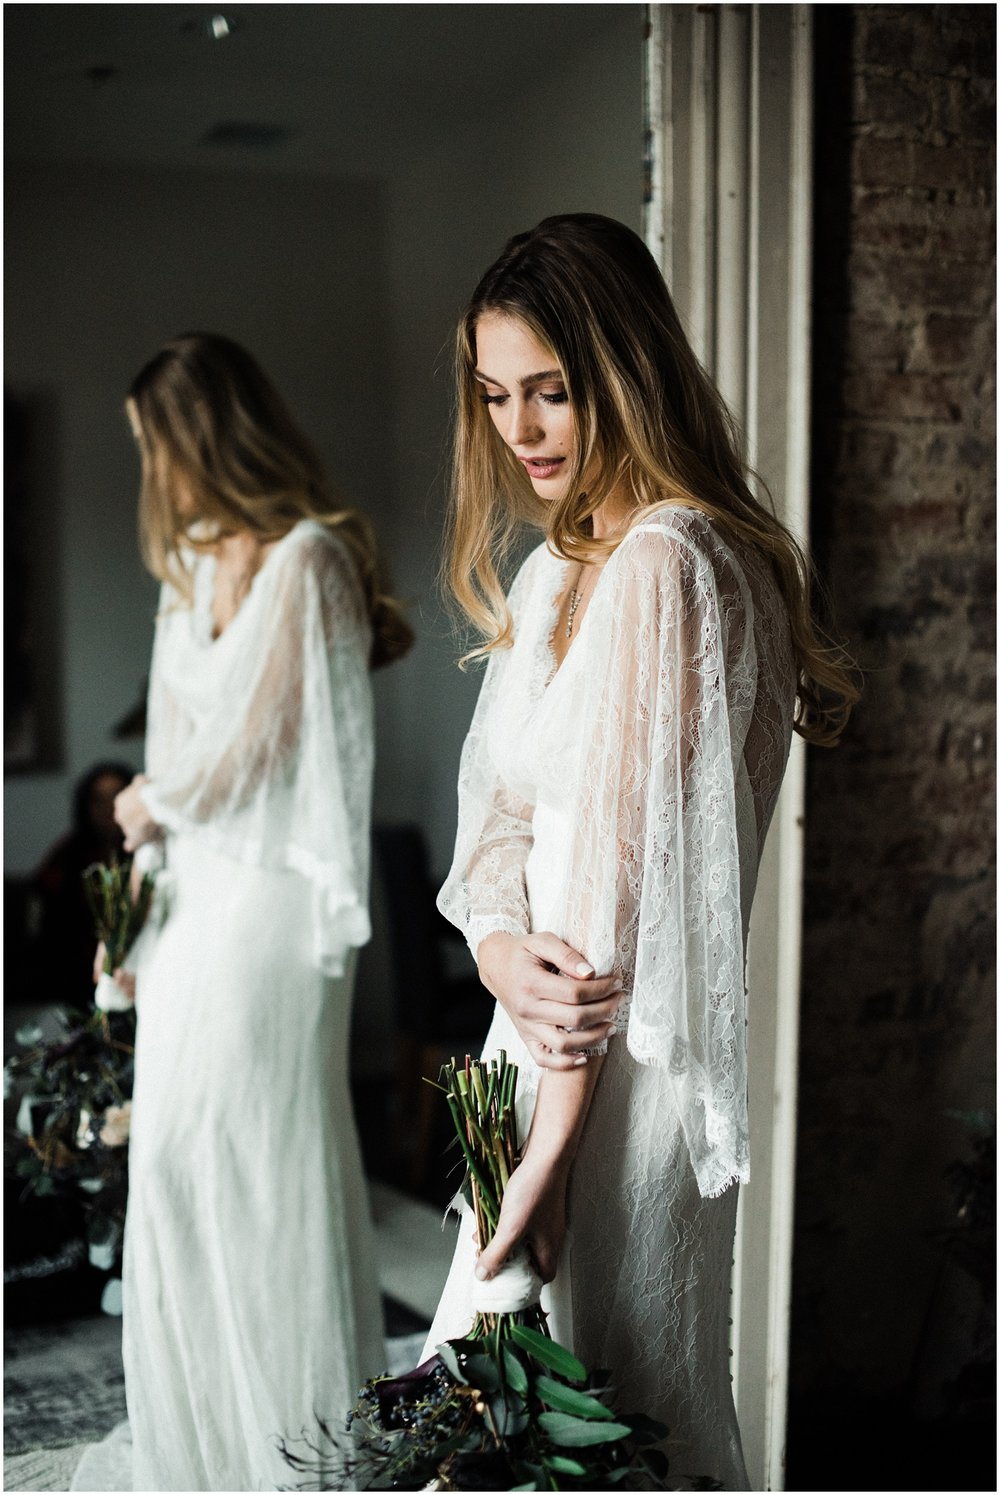 Aimee Thomas _Midwest Ohio Photographer_Modern Wedding Styled Shoot Nashville Tennessee_The Cordelle_0064.jpg